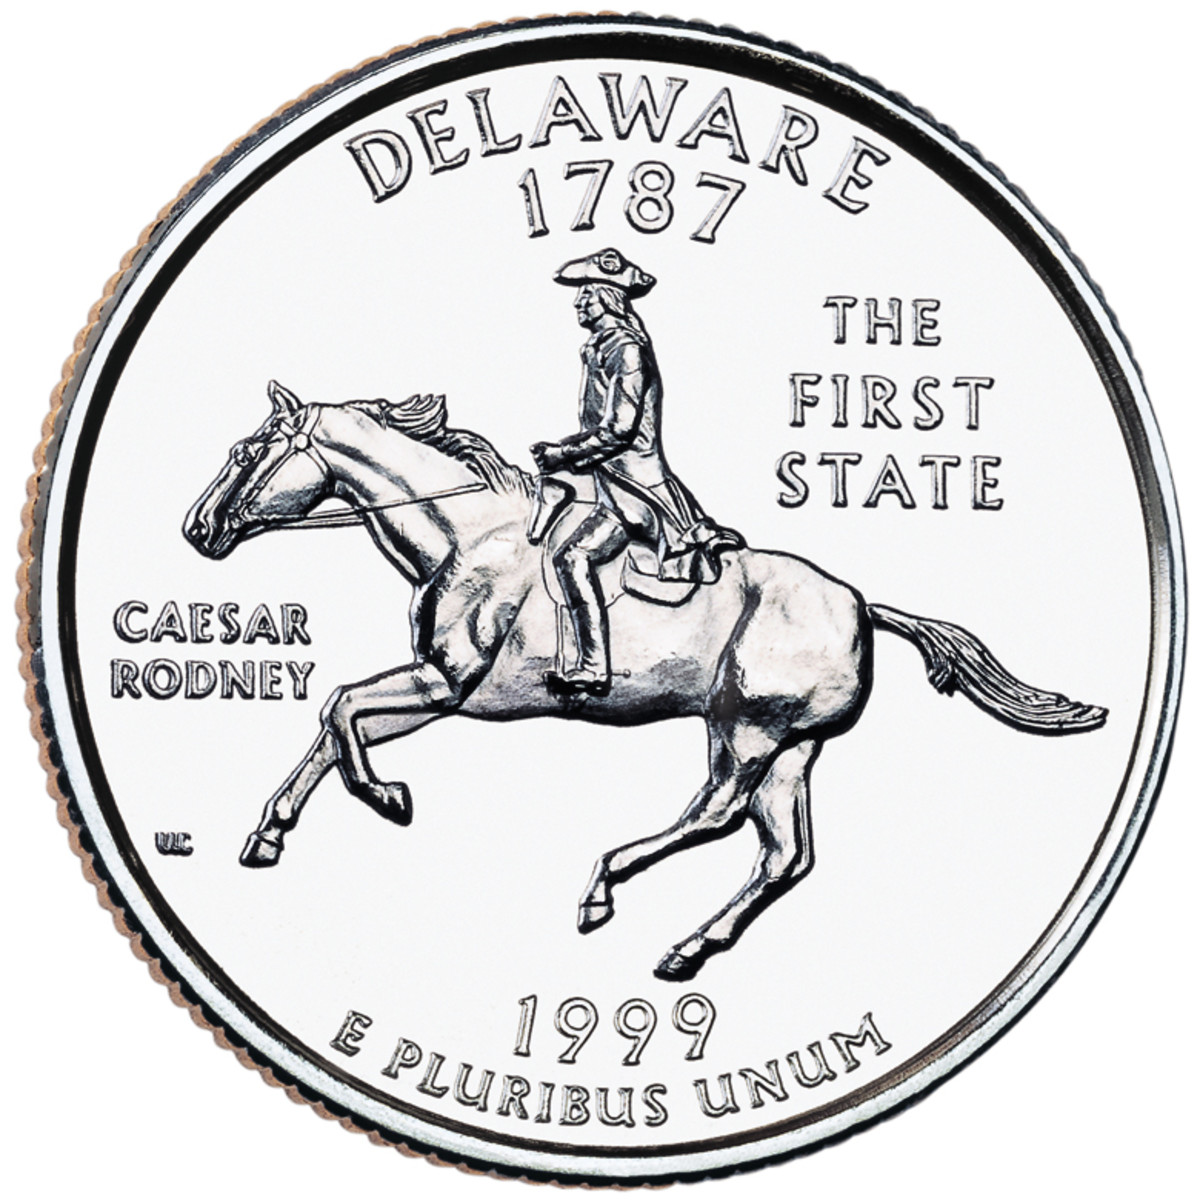 Caesar Rodney depicted on the Delaware Statehood Quarter